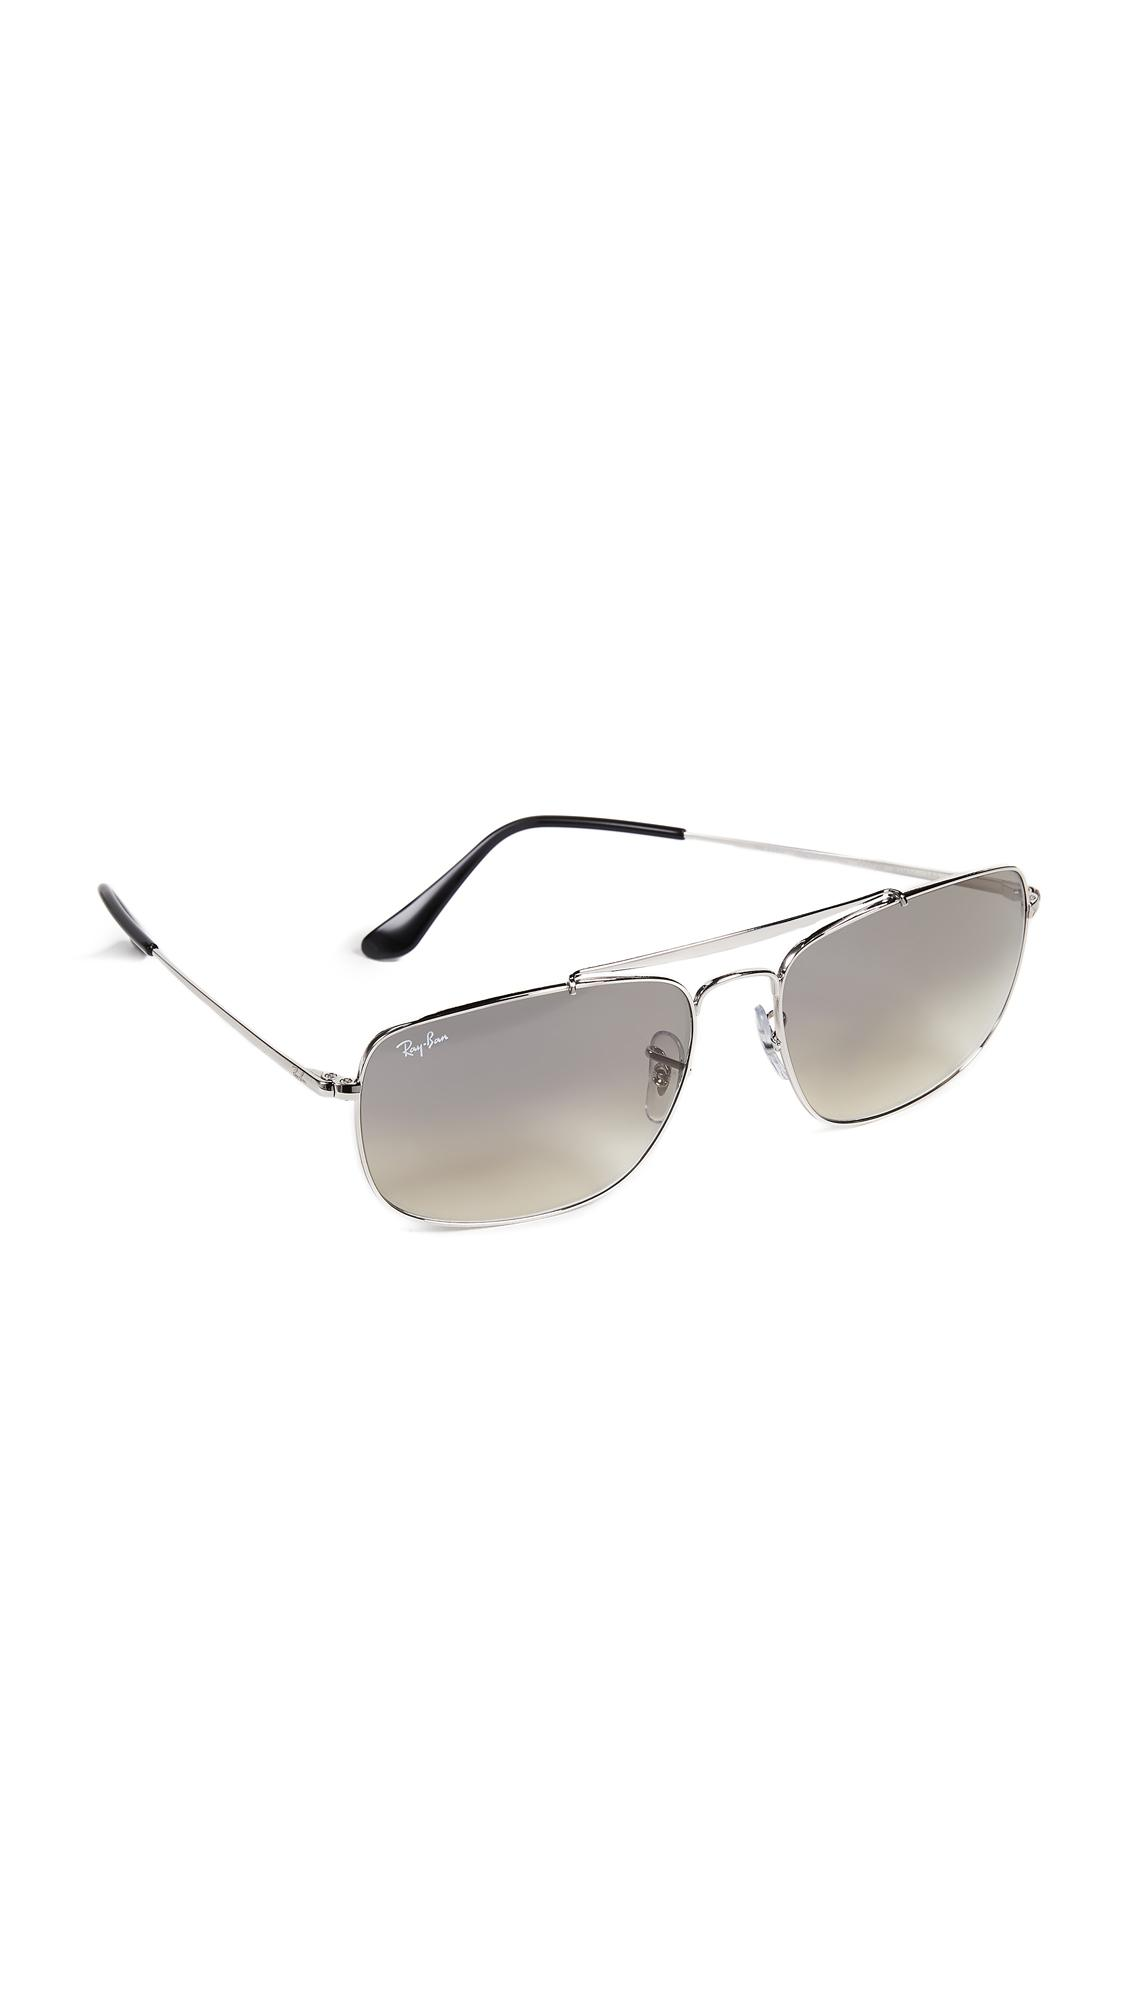 478e287bcd9 Lyst - Ray-Ban Colonel Sunglasses for Men